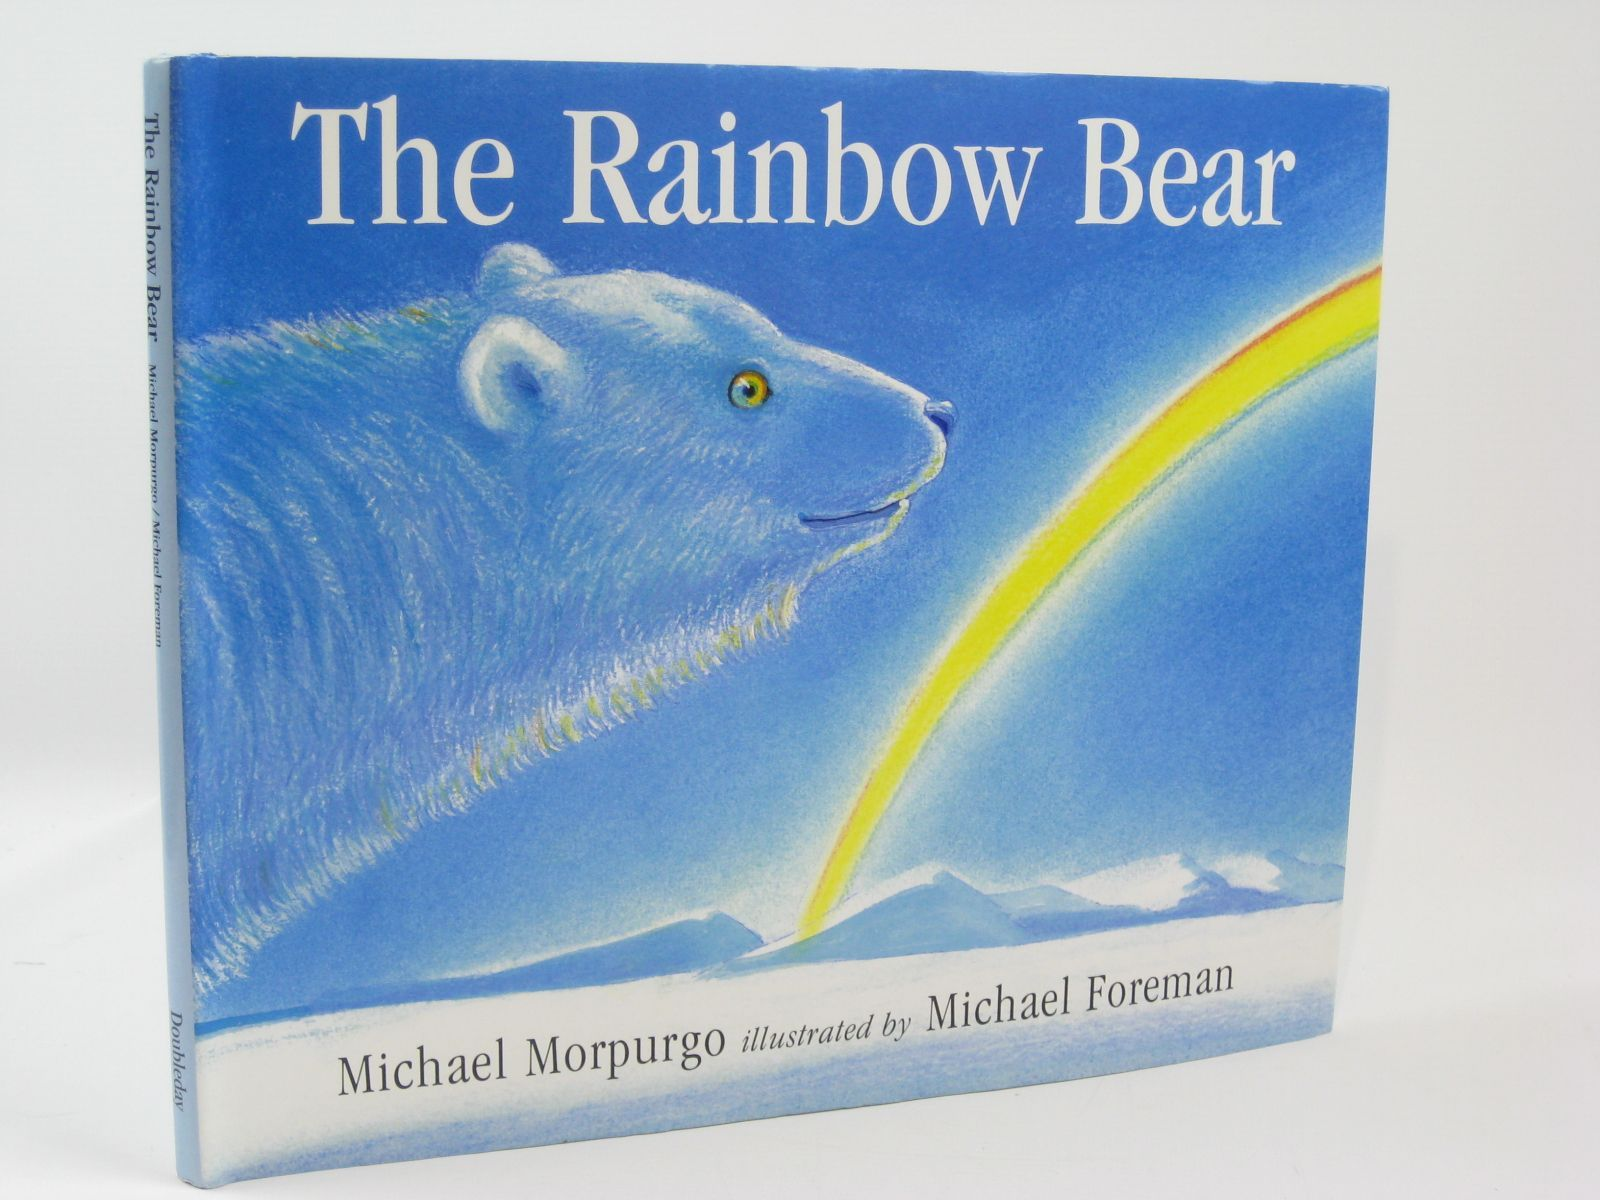 Photo of THE RAINBOW BEAR written by Morpurgo, Michael illustrated by Foreman, Michael published by Doubleday (STOCK CODE: 1406228)  for sale by Stella & Rose's Books